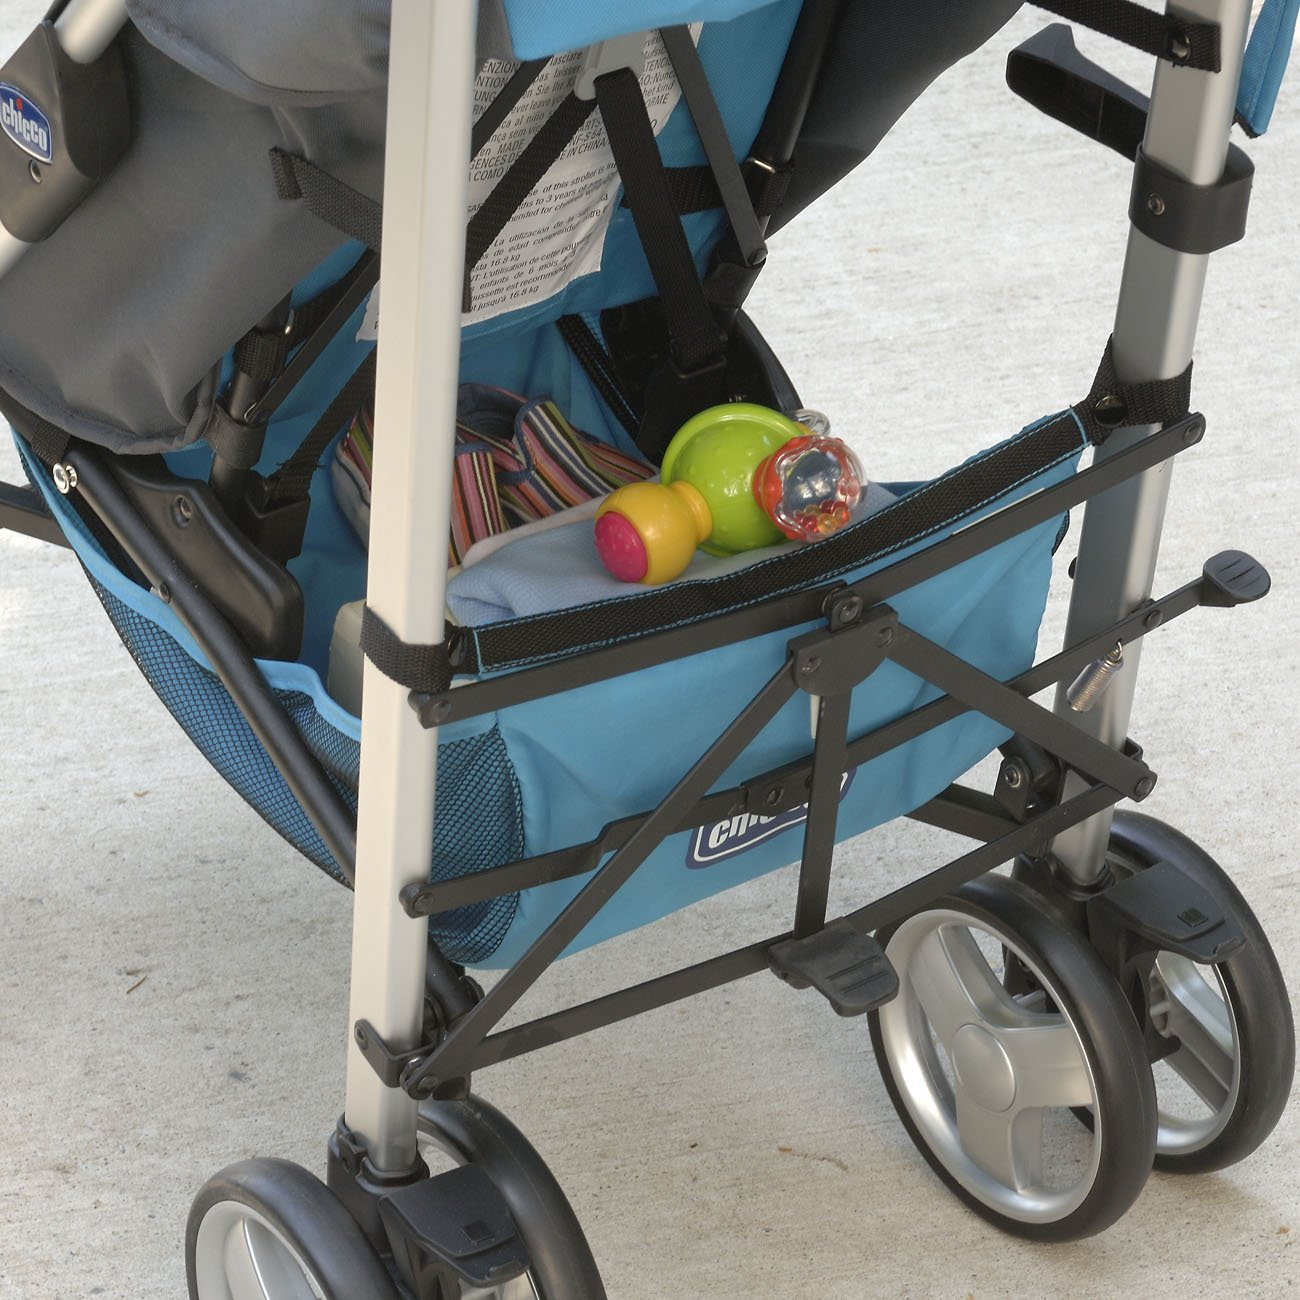 chicco stroller user manual free owners manual u2022 rh infomanualguide today Chicco Cortina Stroller Manual Chicco Cortina Stroller Weight Manual